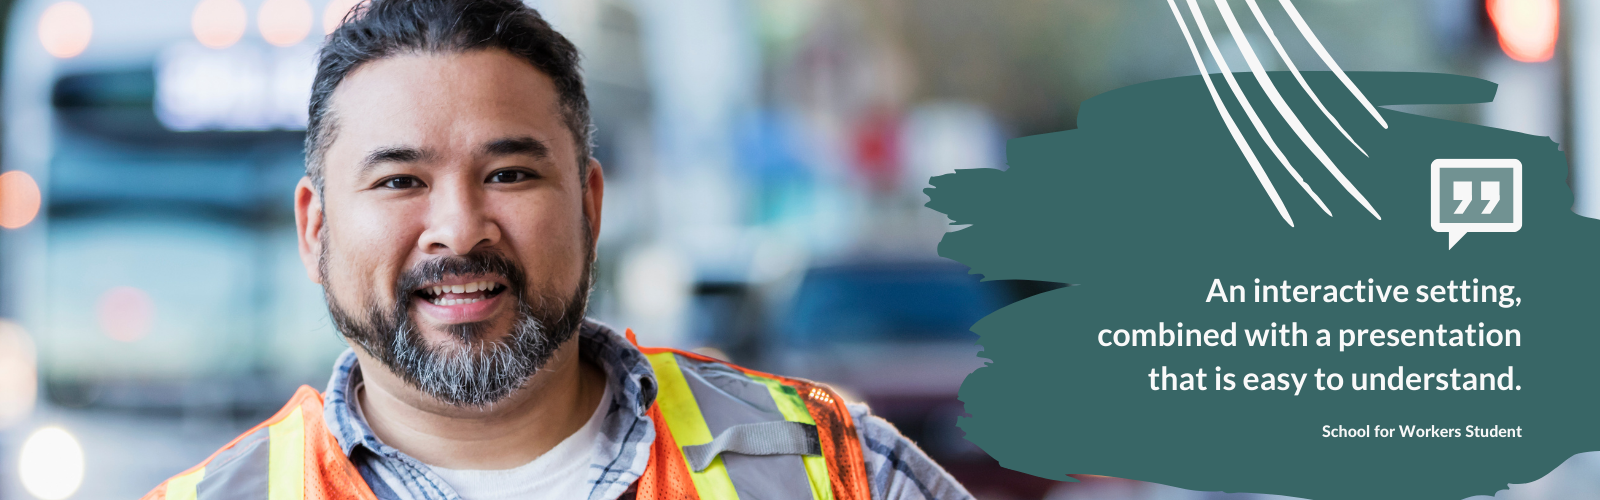 Close up image of bearded man wearing a safety vest looking at the camera smiling. Image also includes a School for Workers student quote saying, An interactive setting, combined with a presentation that is easy to understand.